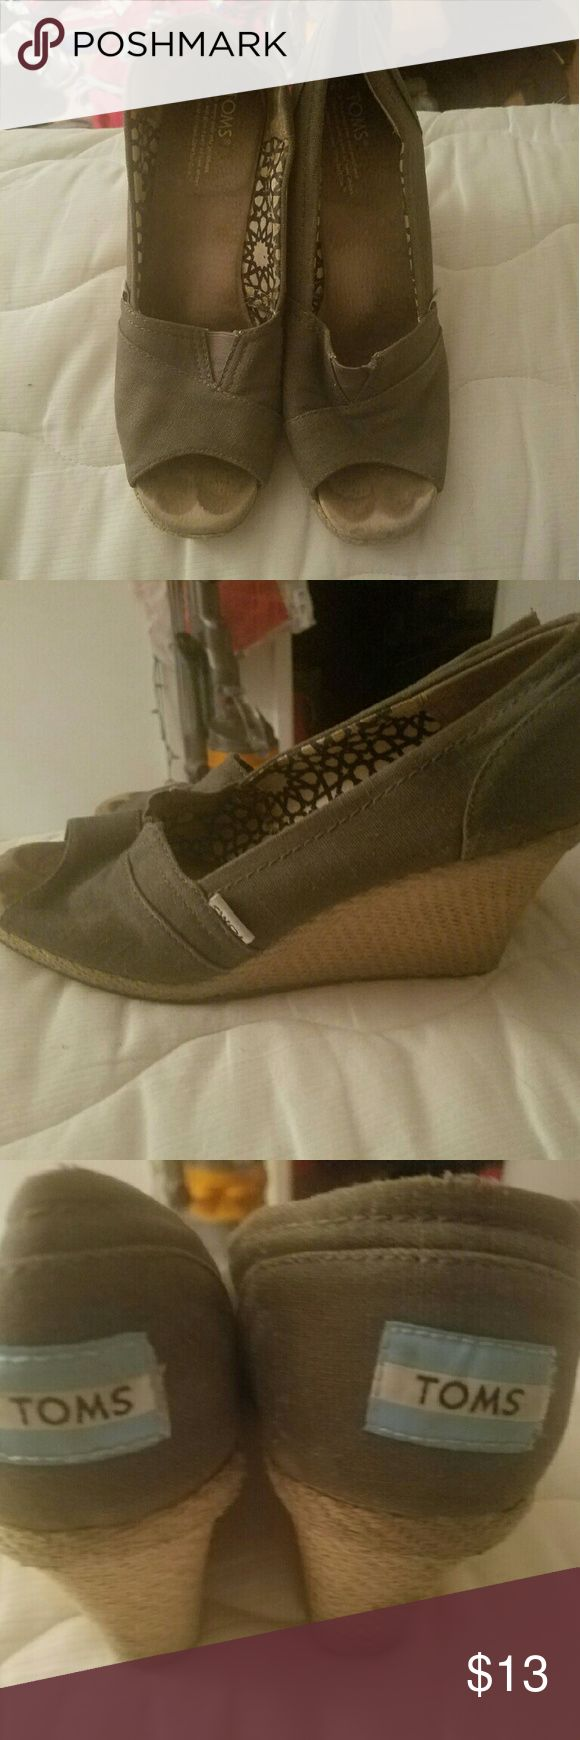 Toms wedges Reposhing. Bought used but good condition. Too big for me. 8W gray TOMS Shoes Wedges